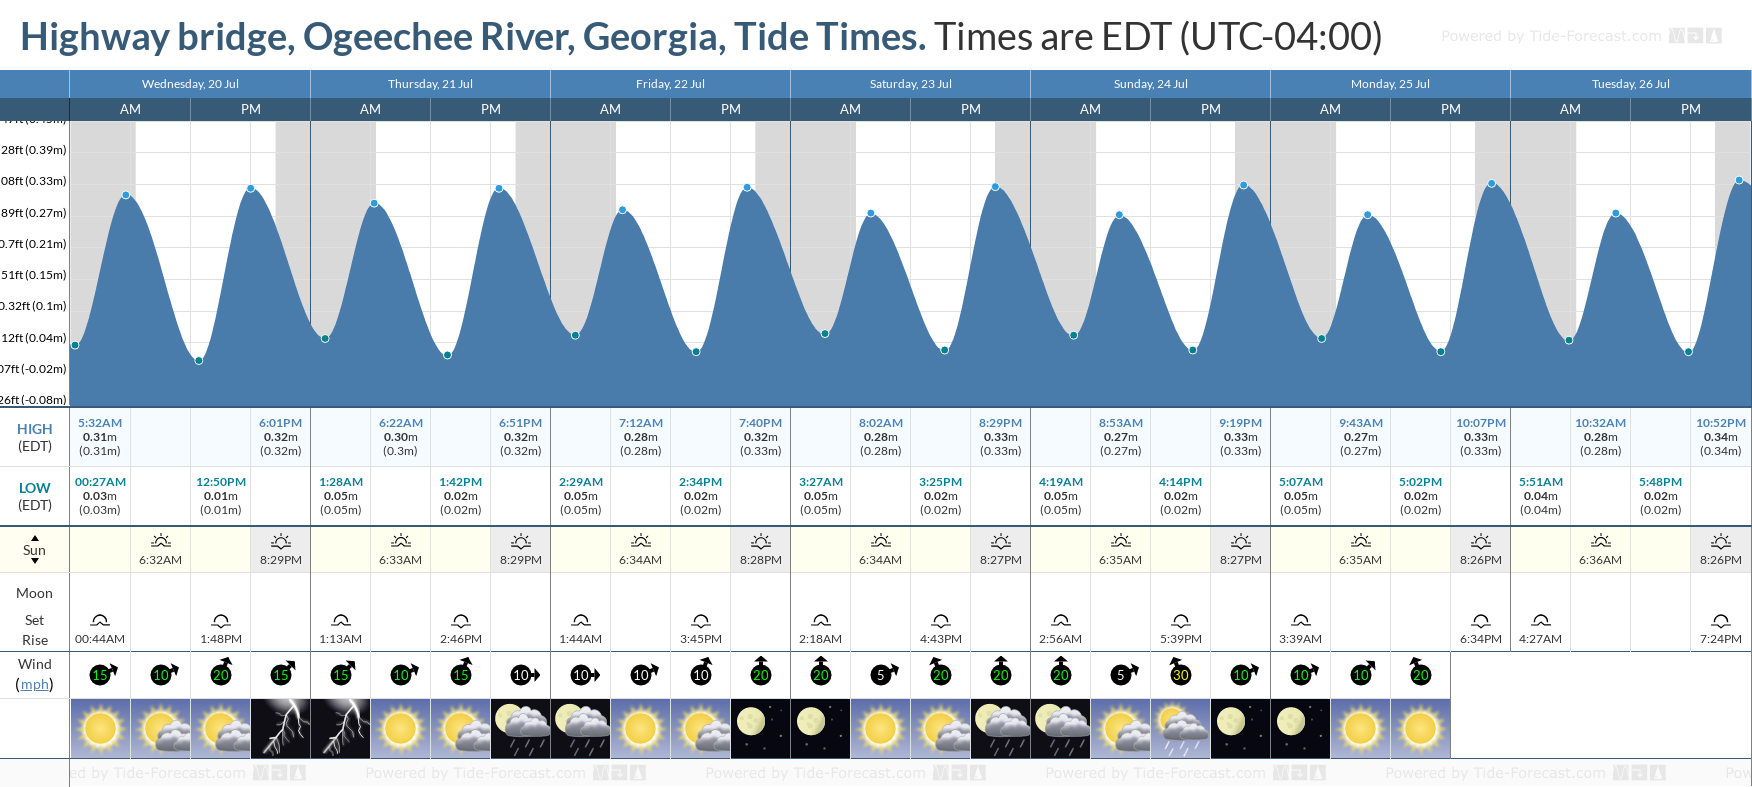 Highway bridge, Ogeechee River, Georgia Tide Chart including high and low tide tide times for the next 7 days